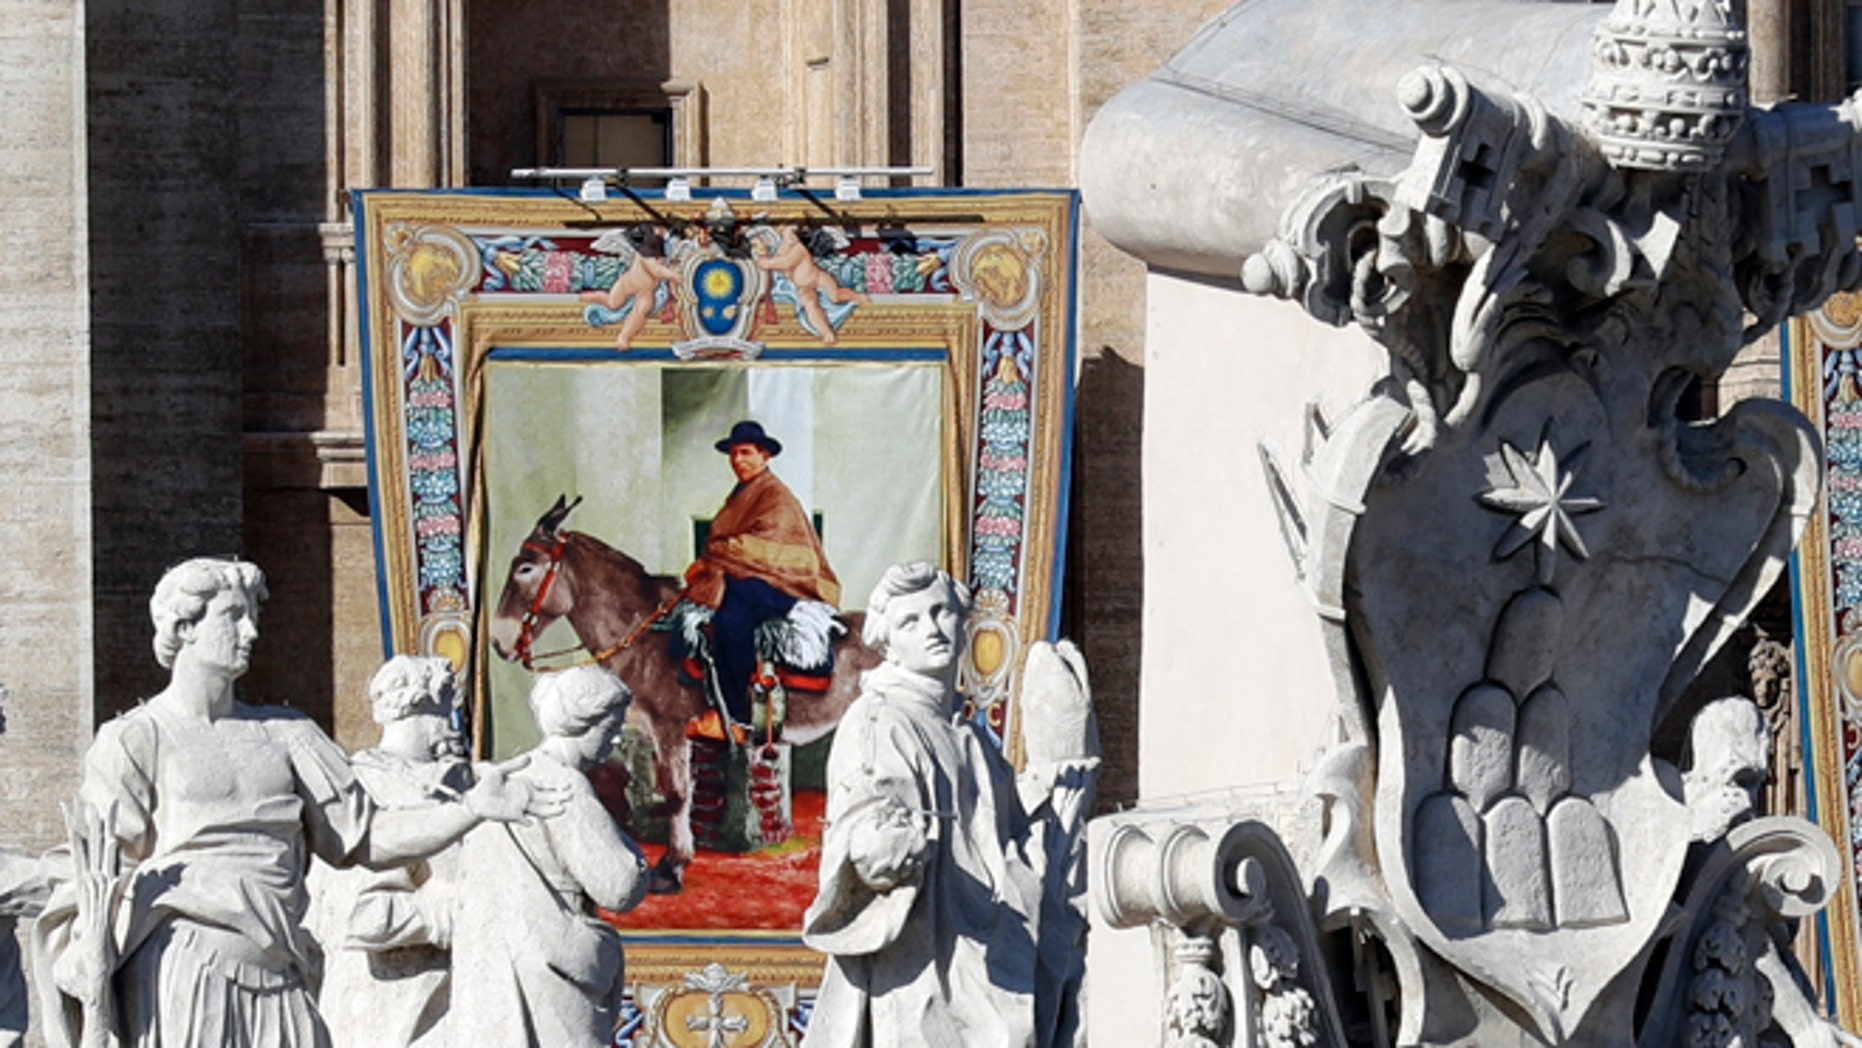 """The tapestry of Argentina's """"gaucho priest"""" Jose Gabriel del Rosario Brochero hangs from the facade of St, Peter's Basilica prior to the start of a Canonization Mass celebrated by Pope Francis in St. Peter's Square, at the Vatican, Sunday, Oct. 16, 2016. The pope canonized Brochero on Sunday along with six others in one of the final big Masses of his Holy Year of Mercy. (AP Photo/Andrew Medichini)"""